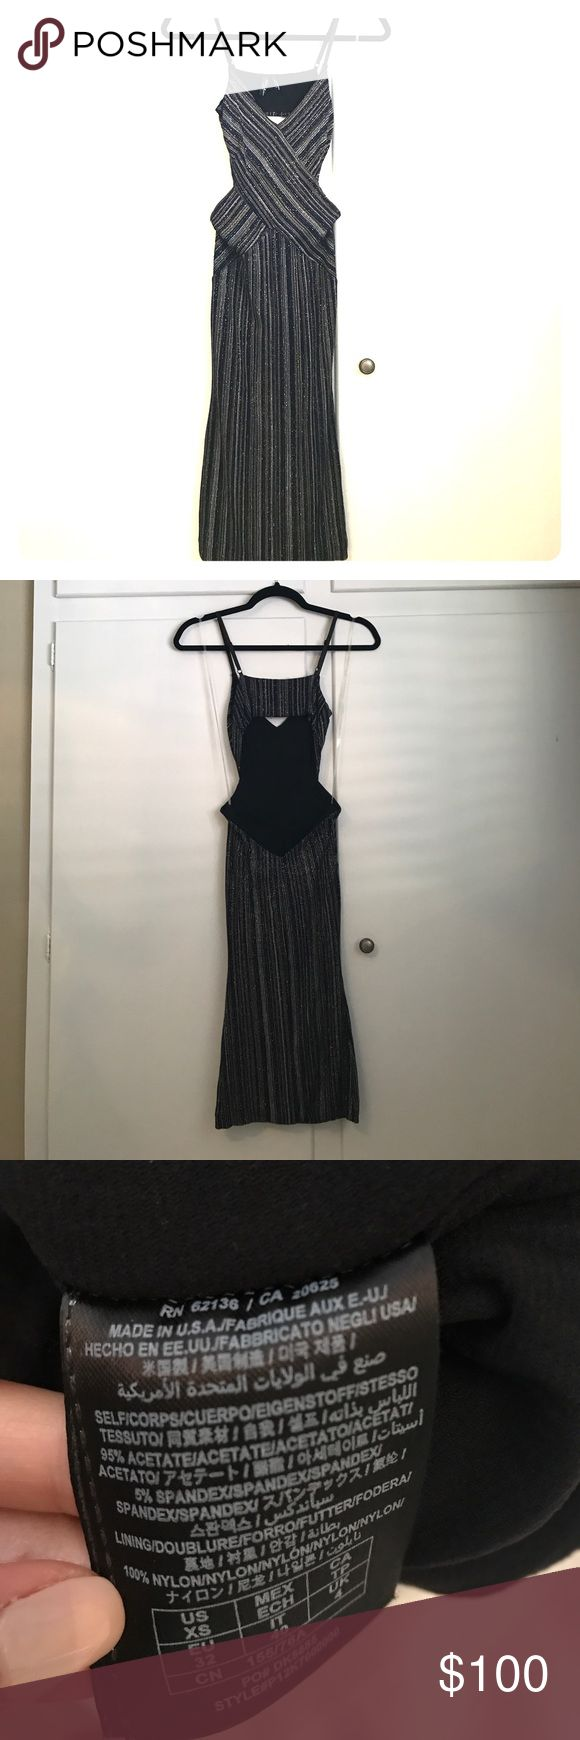 Sparkly Navy & Gold Cutout Back Striped Dress Only worn once. Sparkly striped navy and gold form fitting dress. Guess by Marciano Dresses Midi